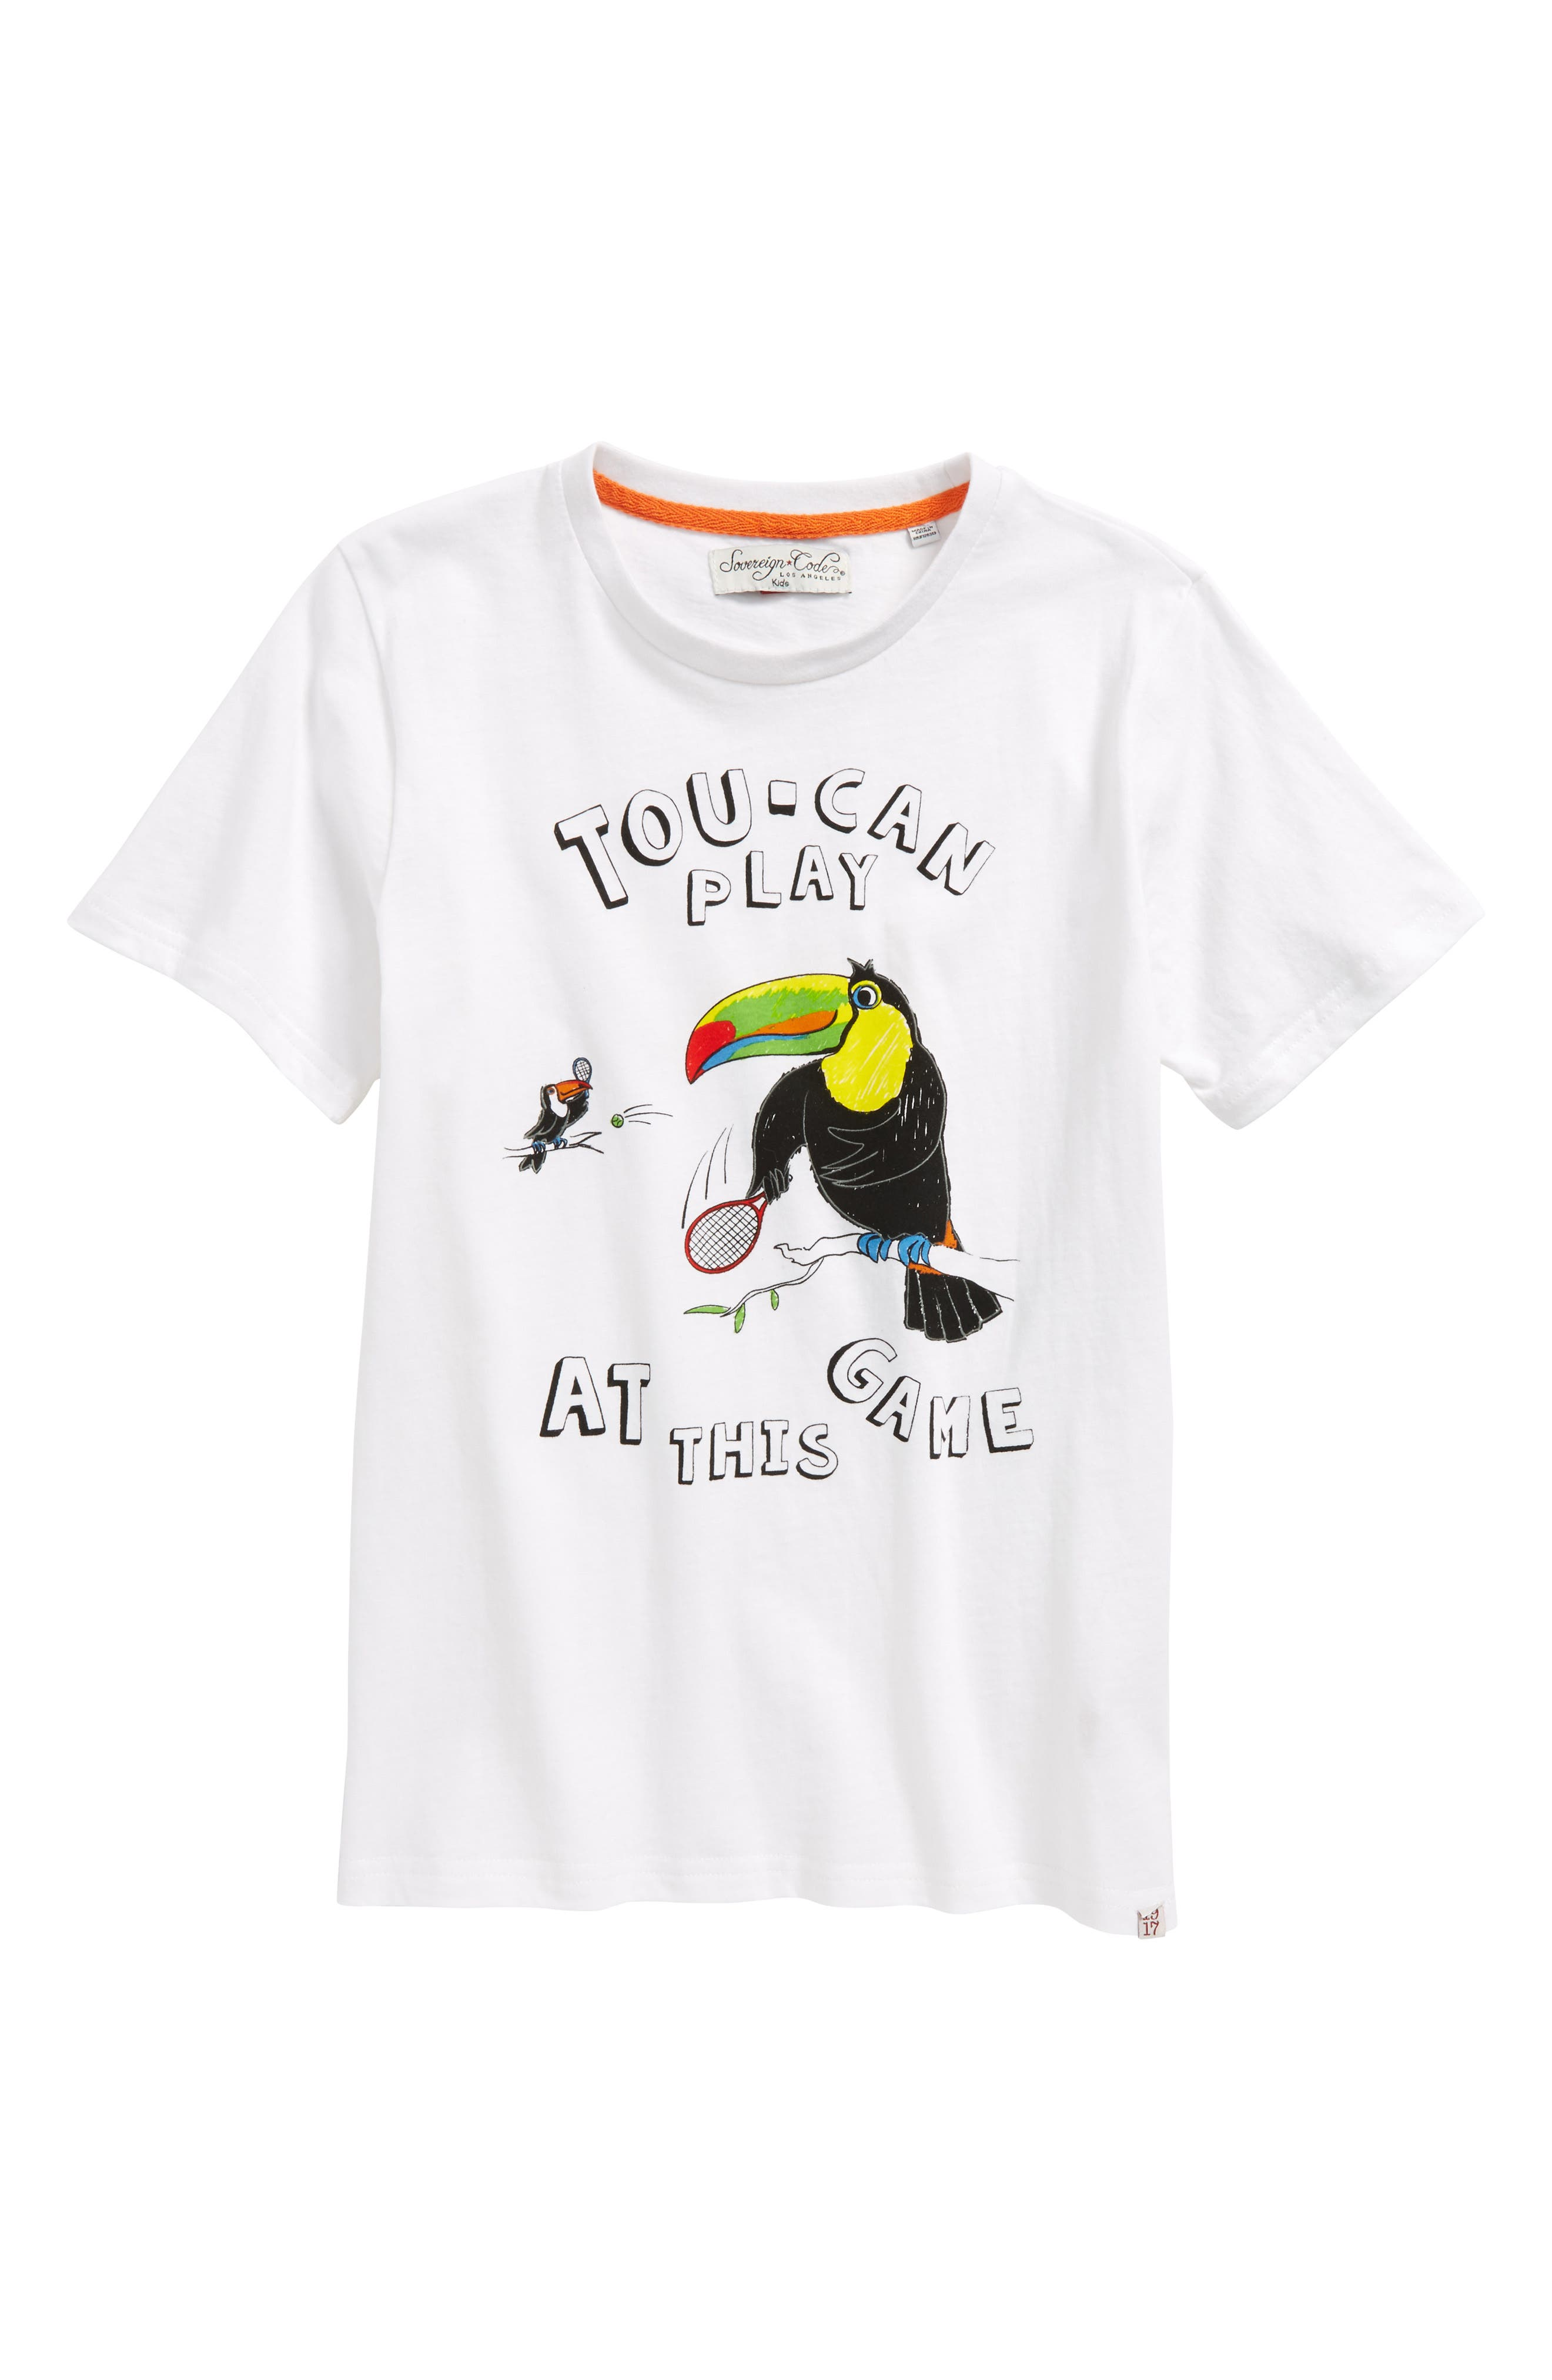 Alternate Image 1 Selected - Sovereign Code Toucan Play Graphic T-Shirt (Toddler Boys & Little Boys)